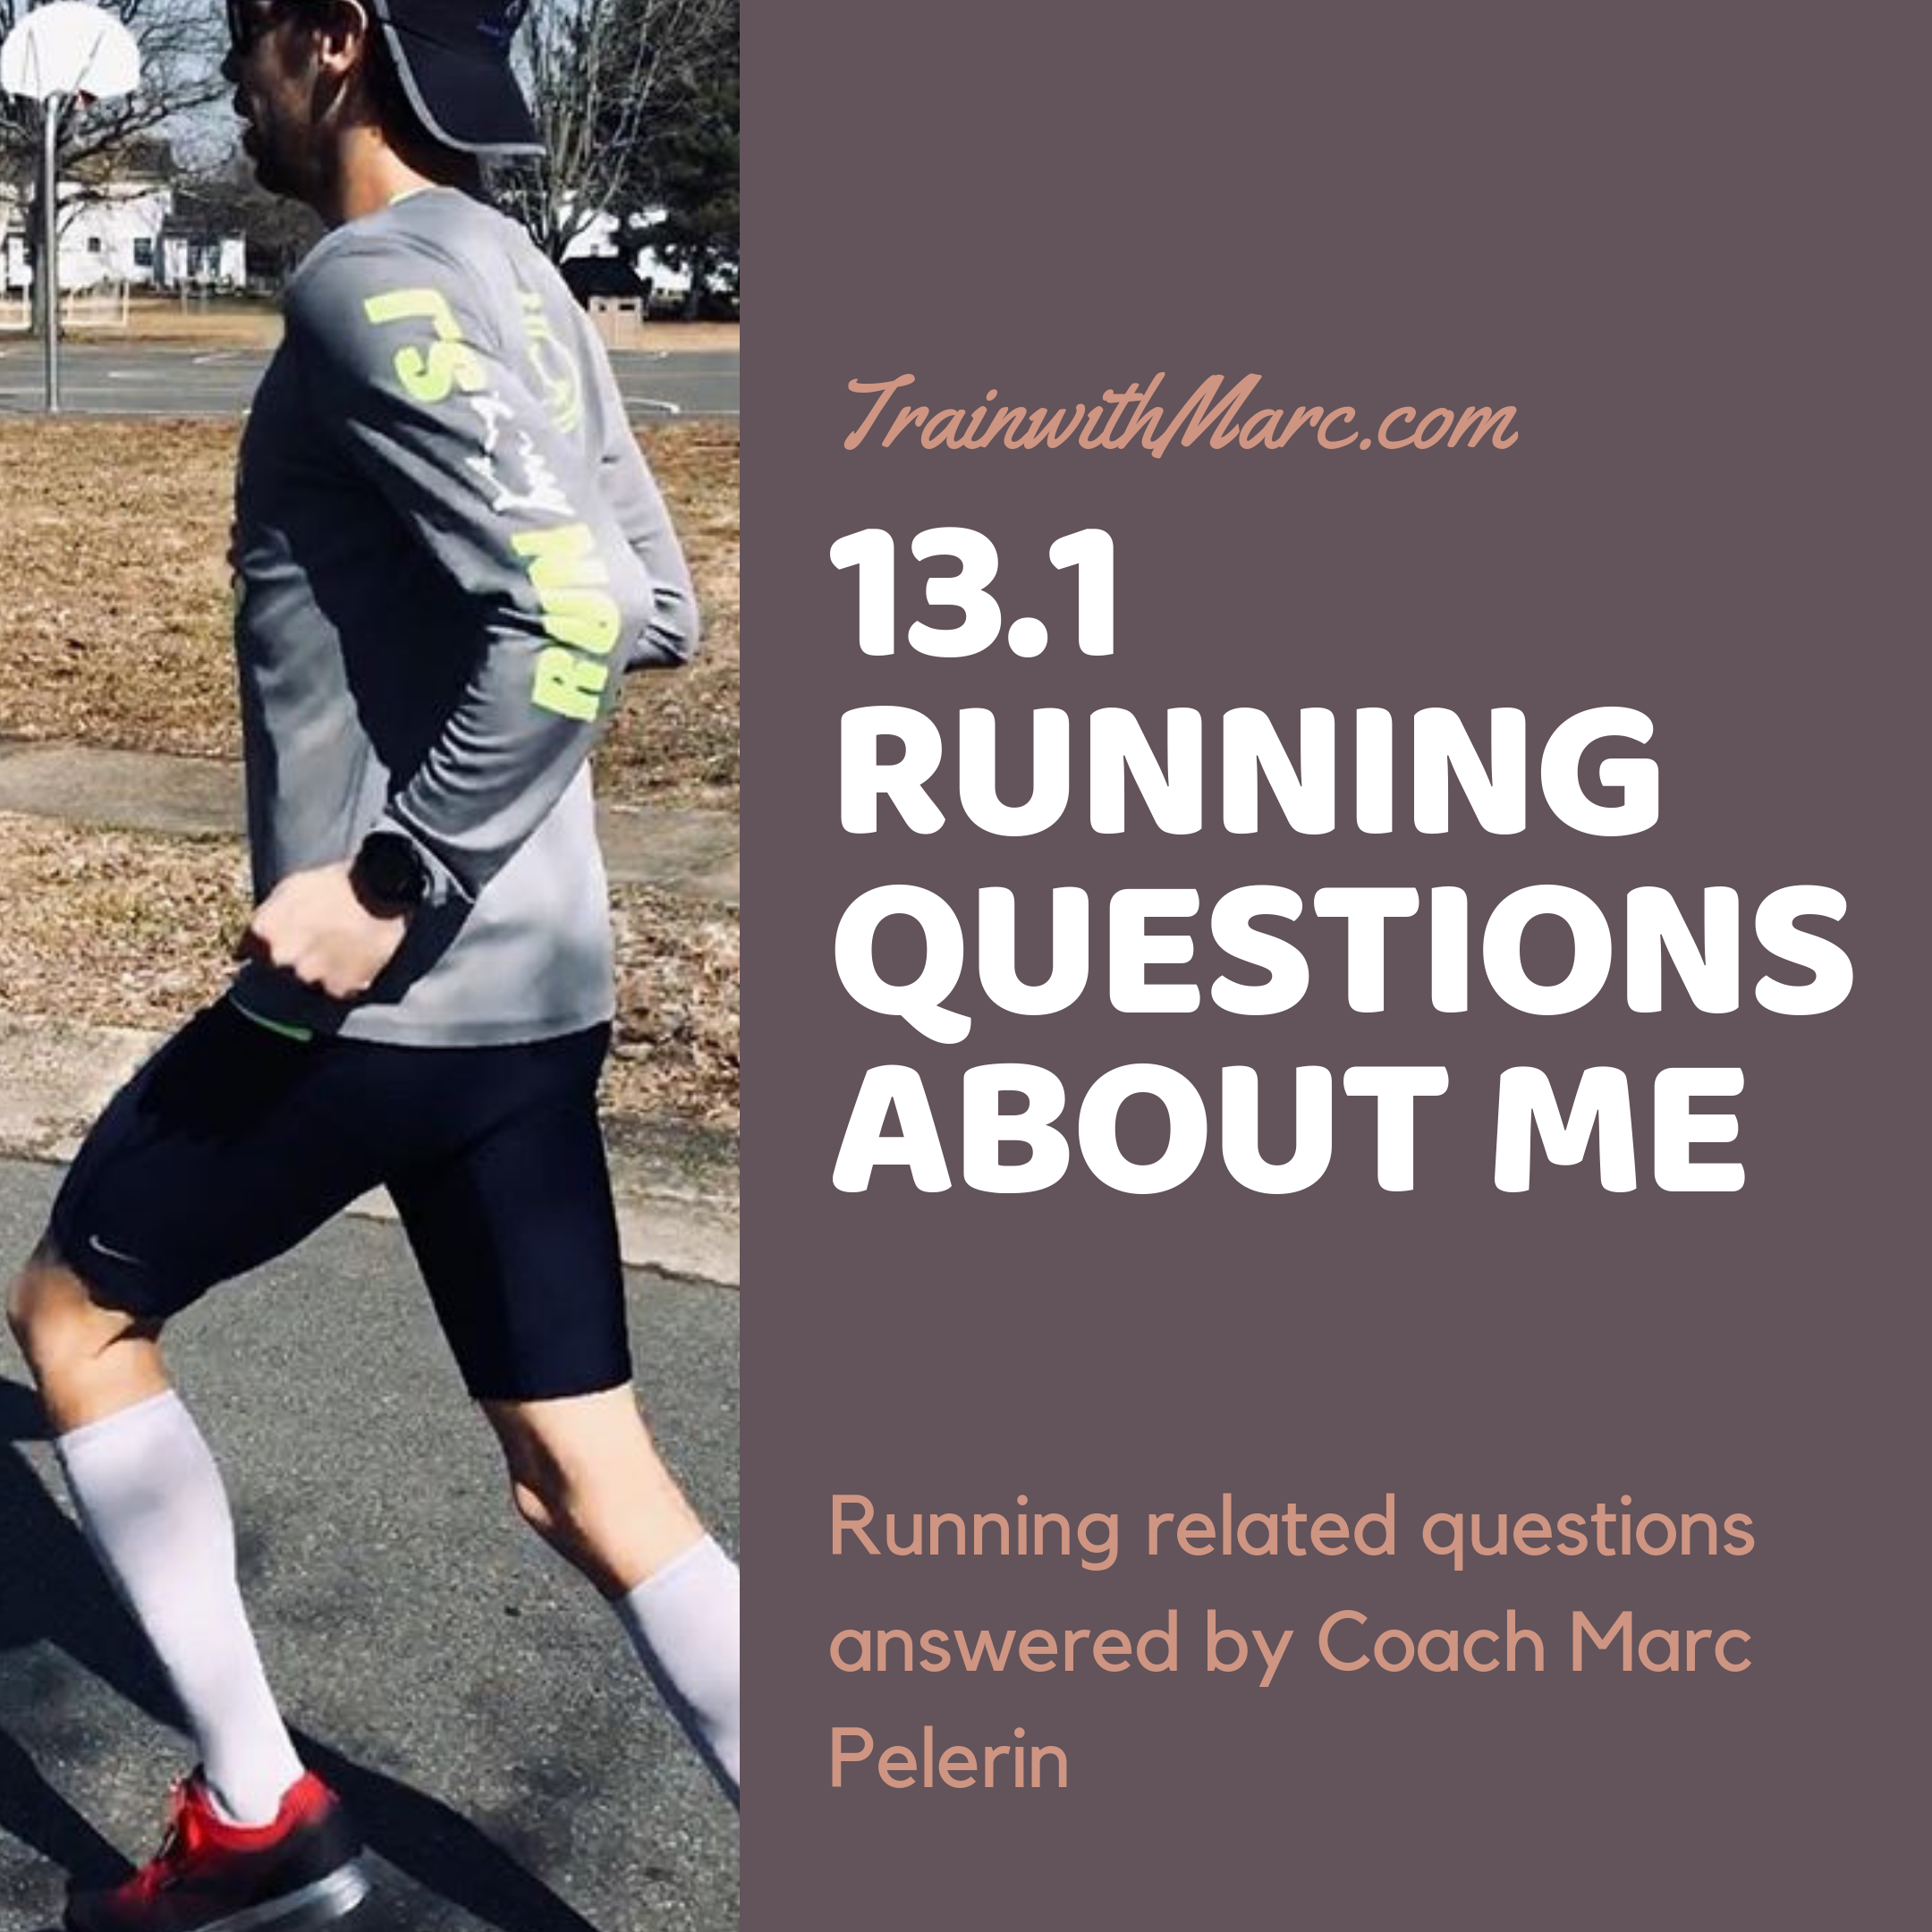 Running Questions for Marc Pelerin